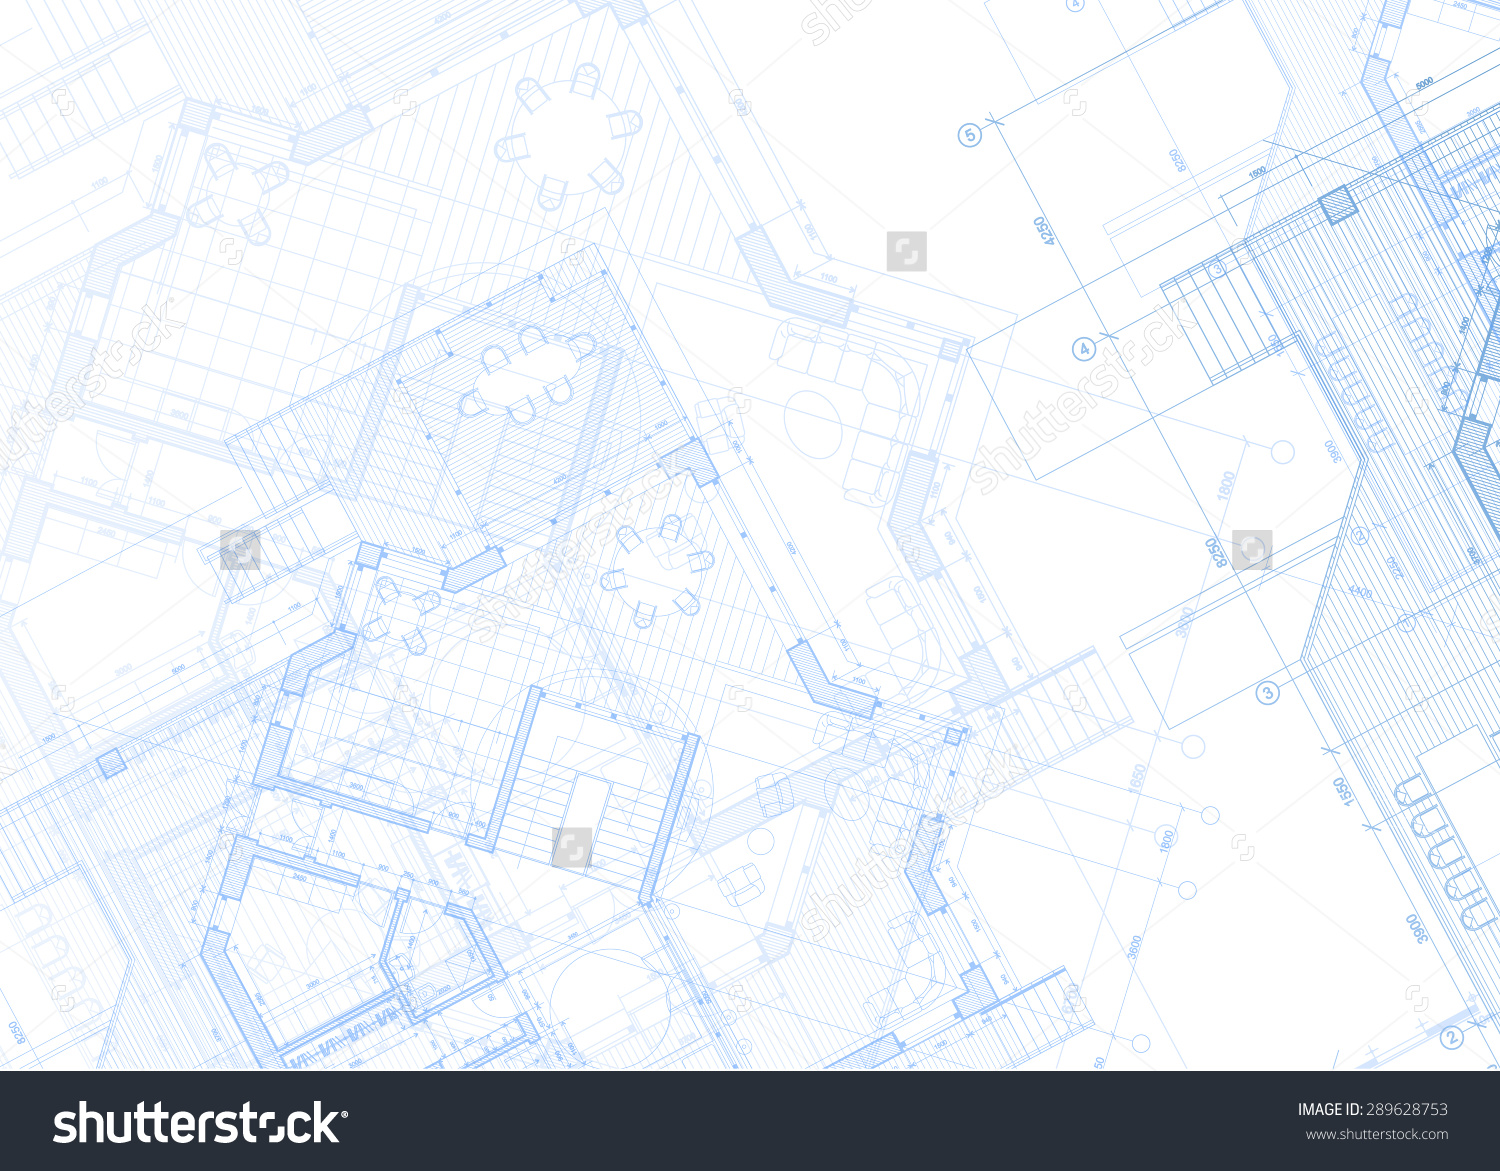 Stock Vector Architecture Design Blueprint Plans Vector